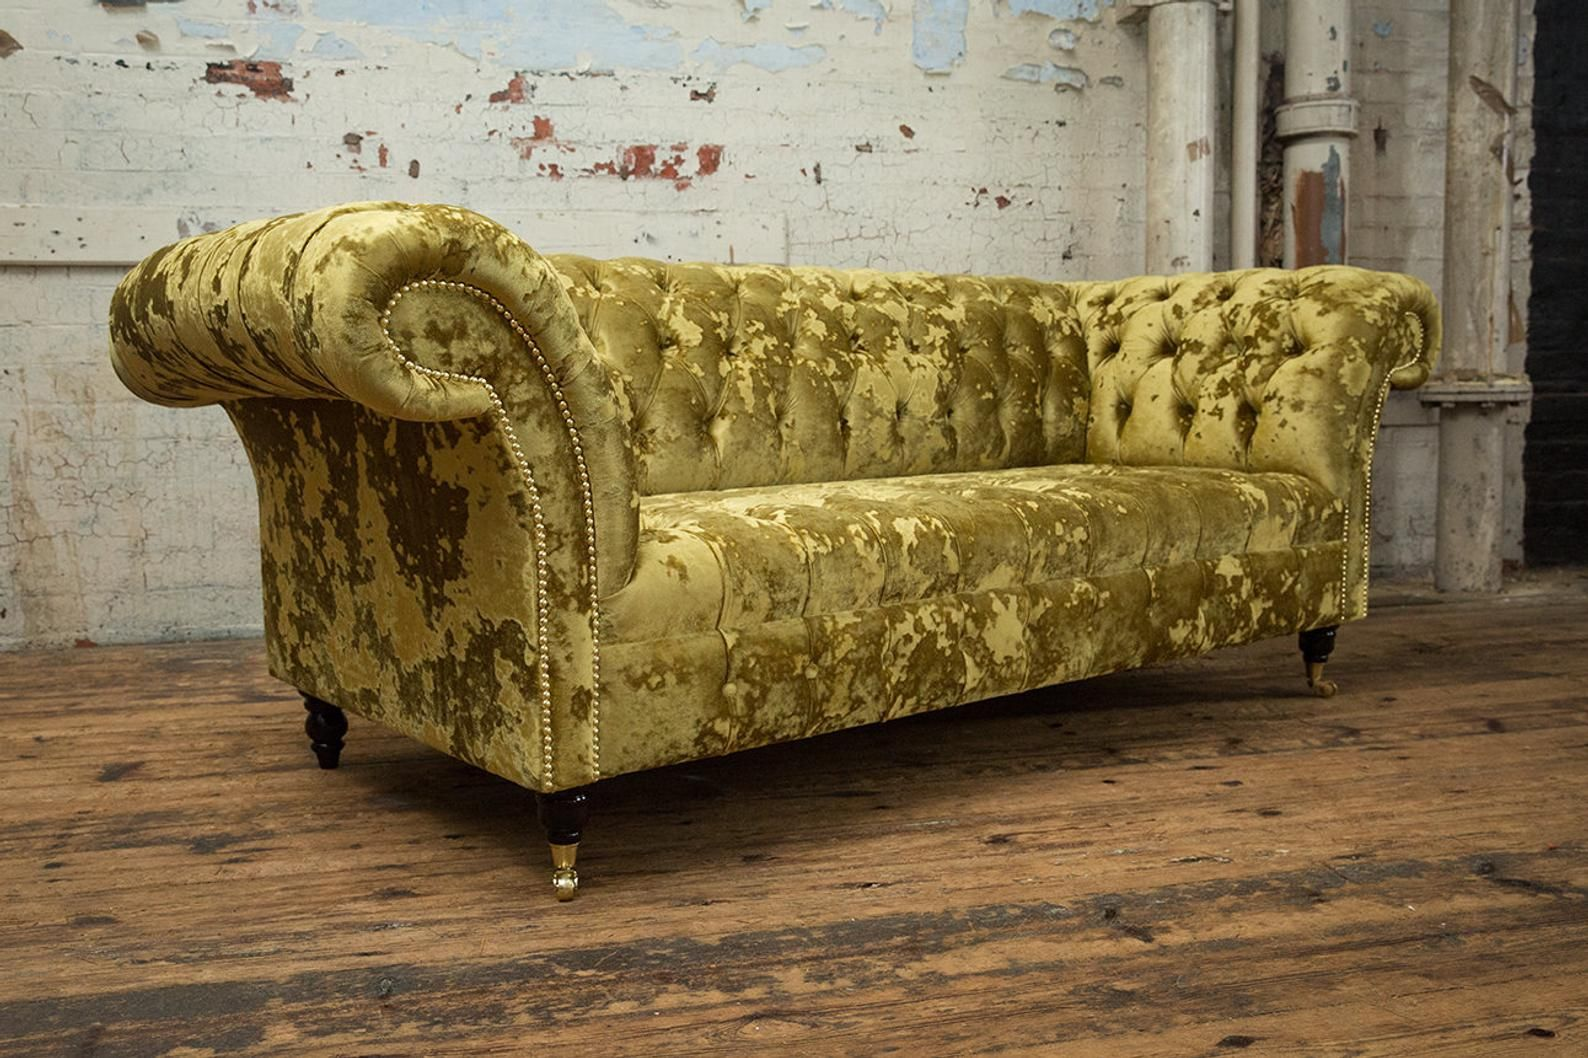 Unique British Handmade Gold Crushed Velvet 3 Seater Chesterfield Sofa Button Seat Chesterfield Sofa Design Chesterfield Sofa Velvet Chesterfield Sofa